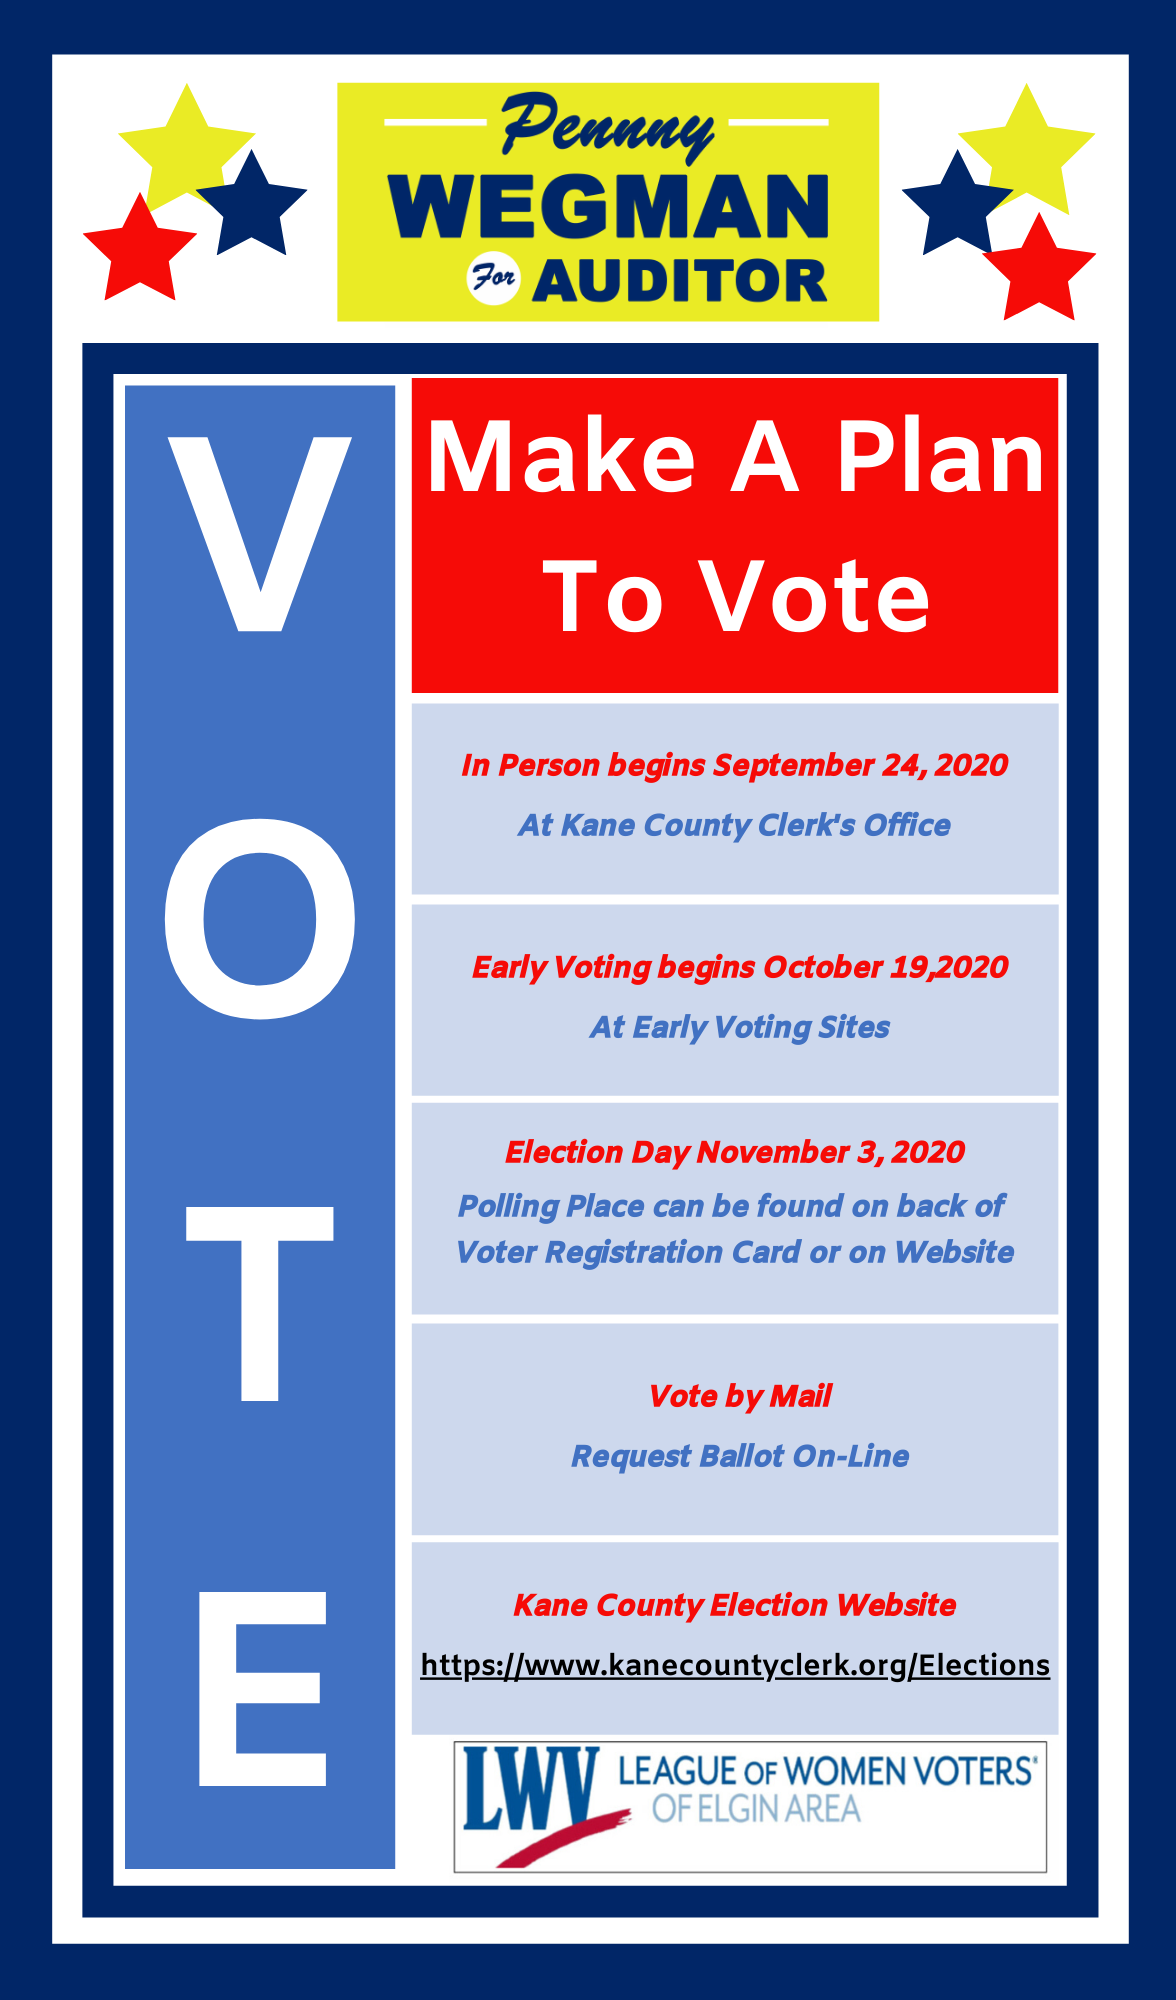 Make a plan to vote!